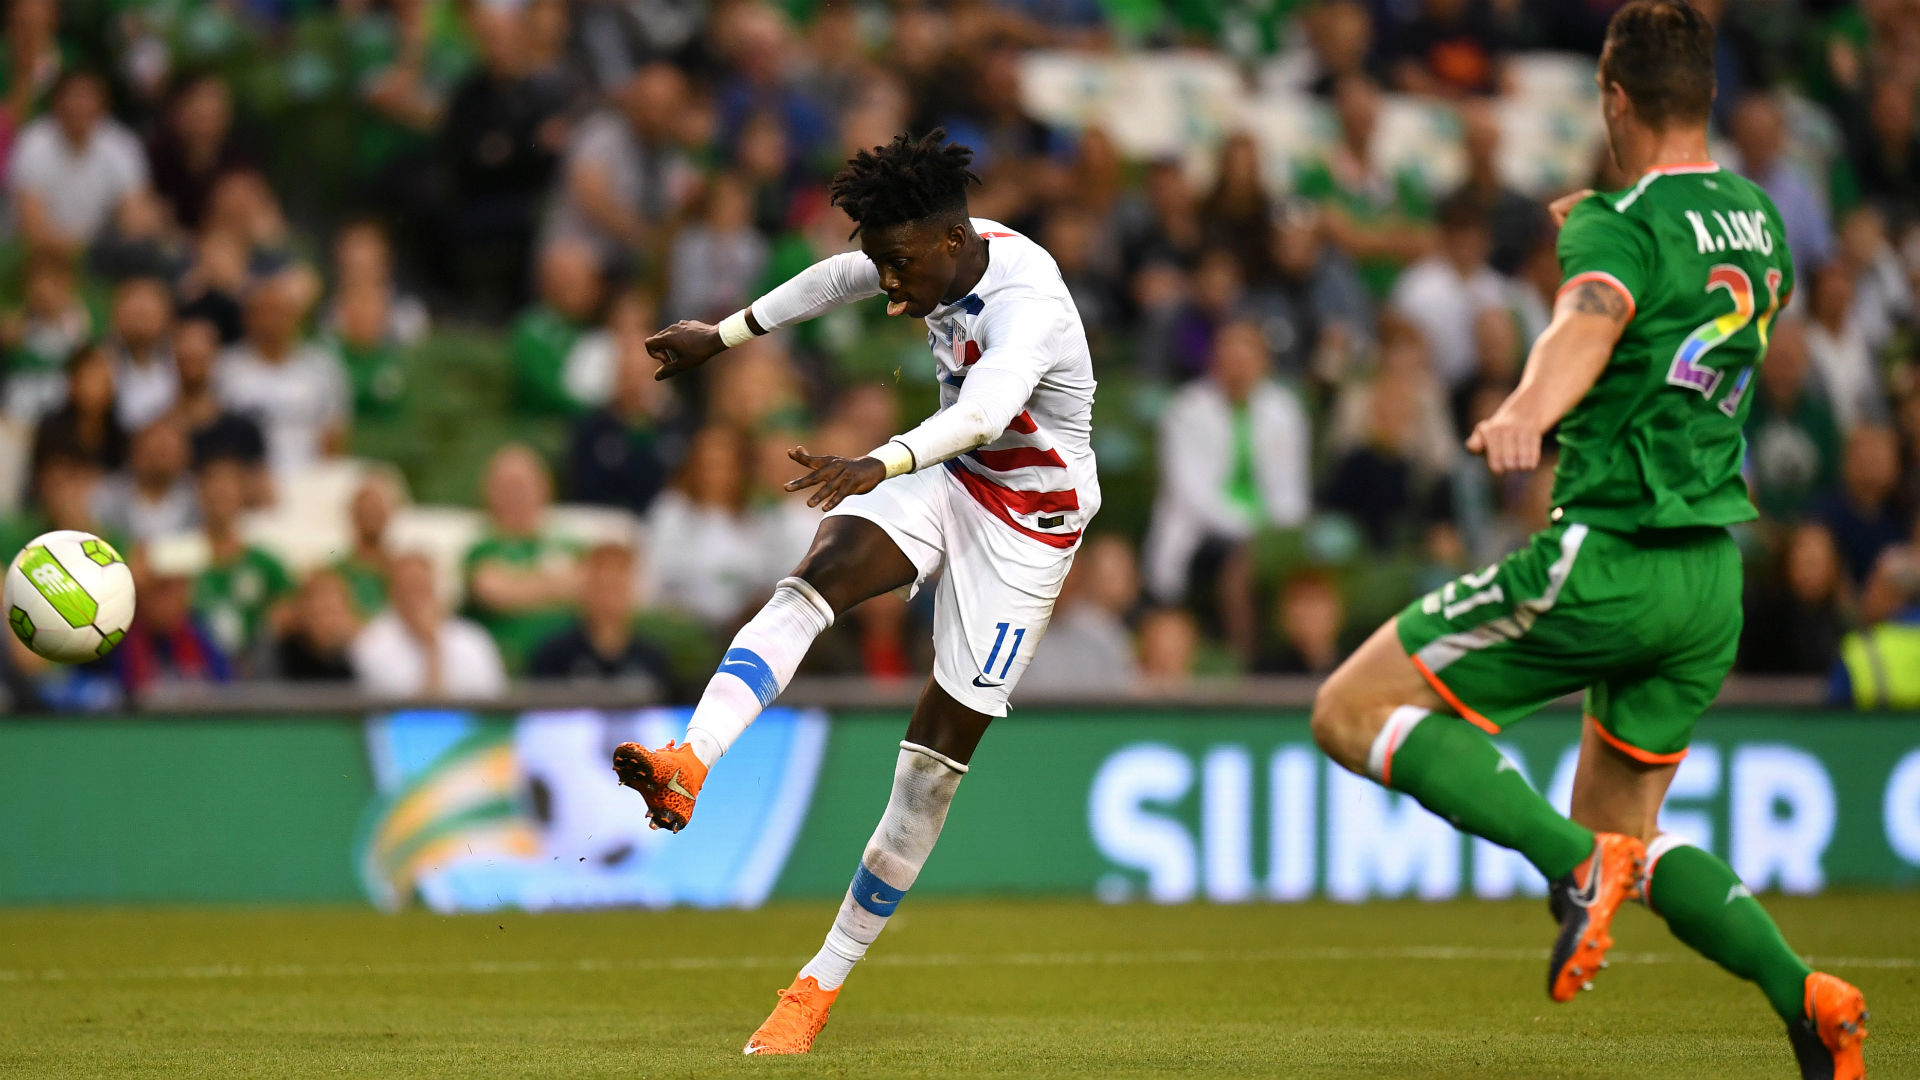 Tim Weah Ireland USA international friendly 2018